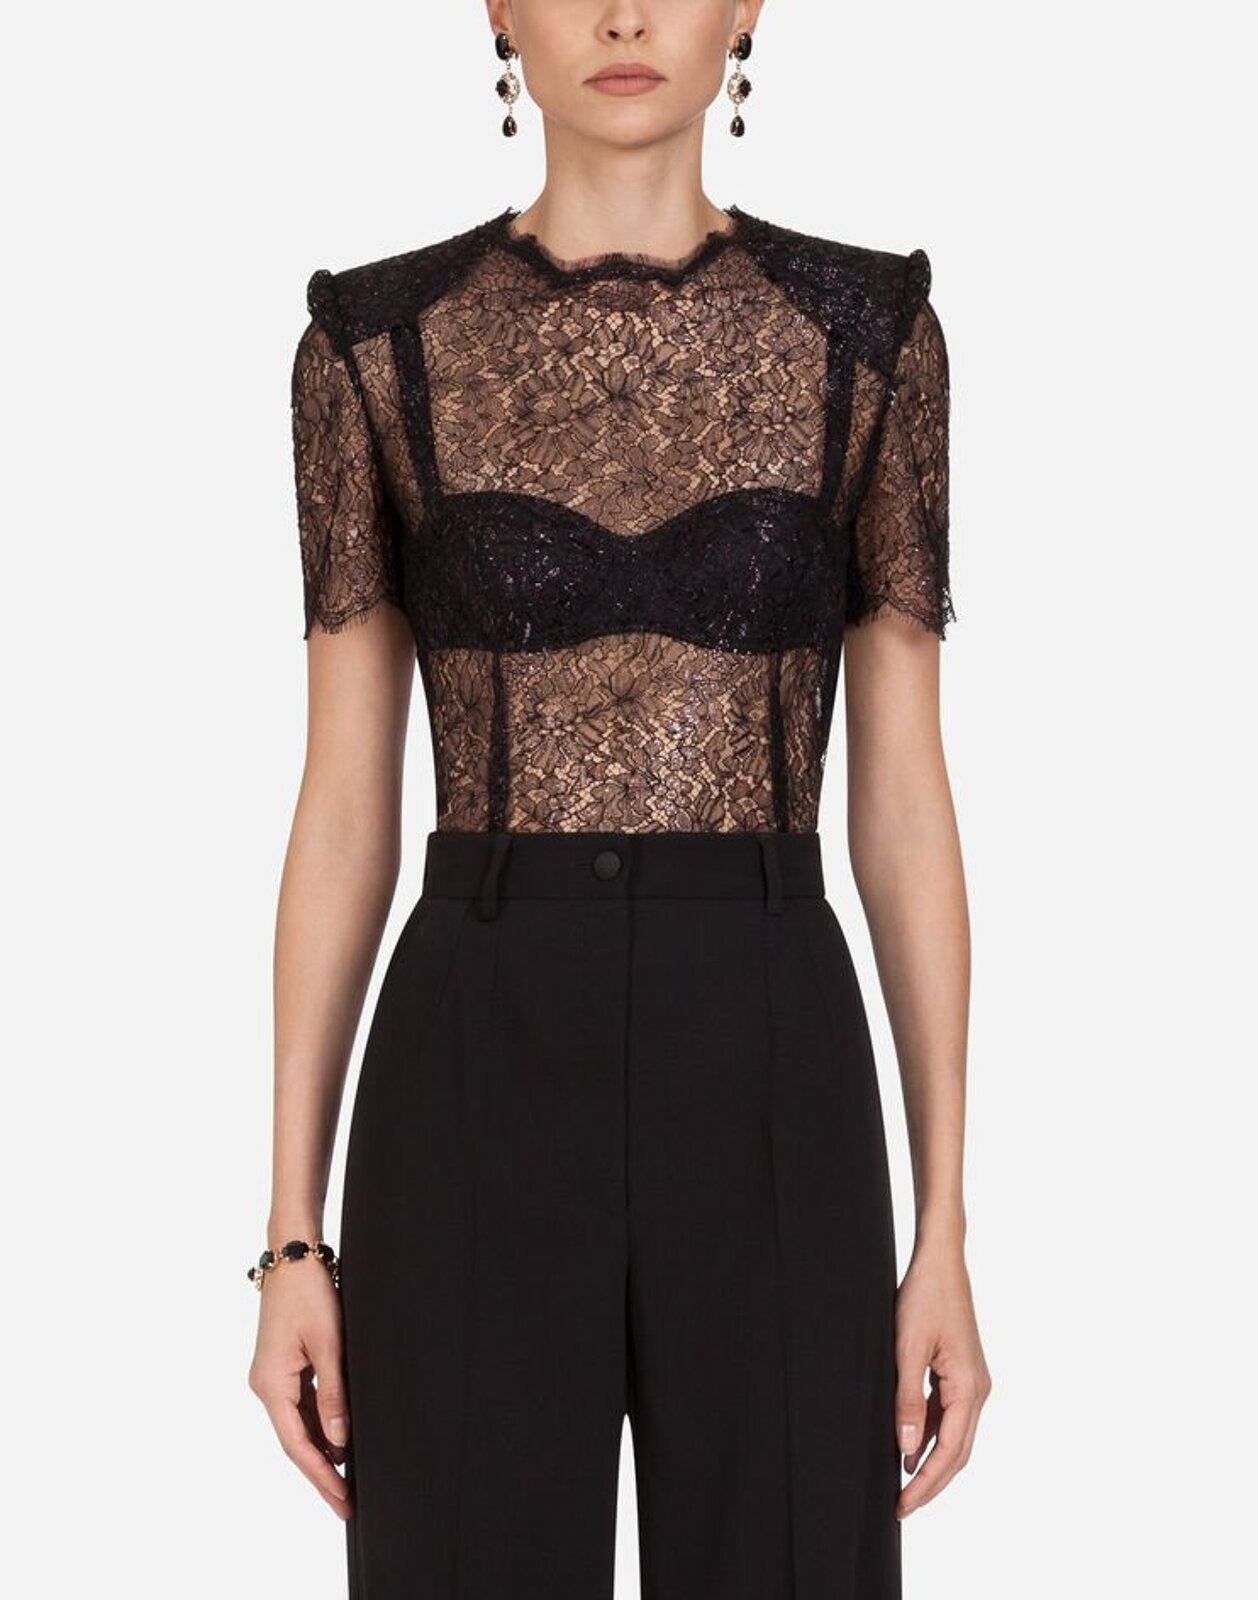 Short Sleeve Top In Lamé Lace - Dolce & Gabbana